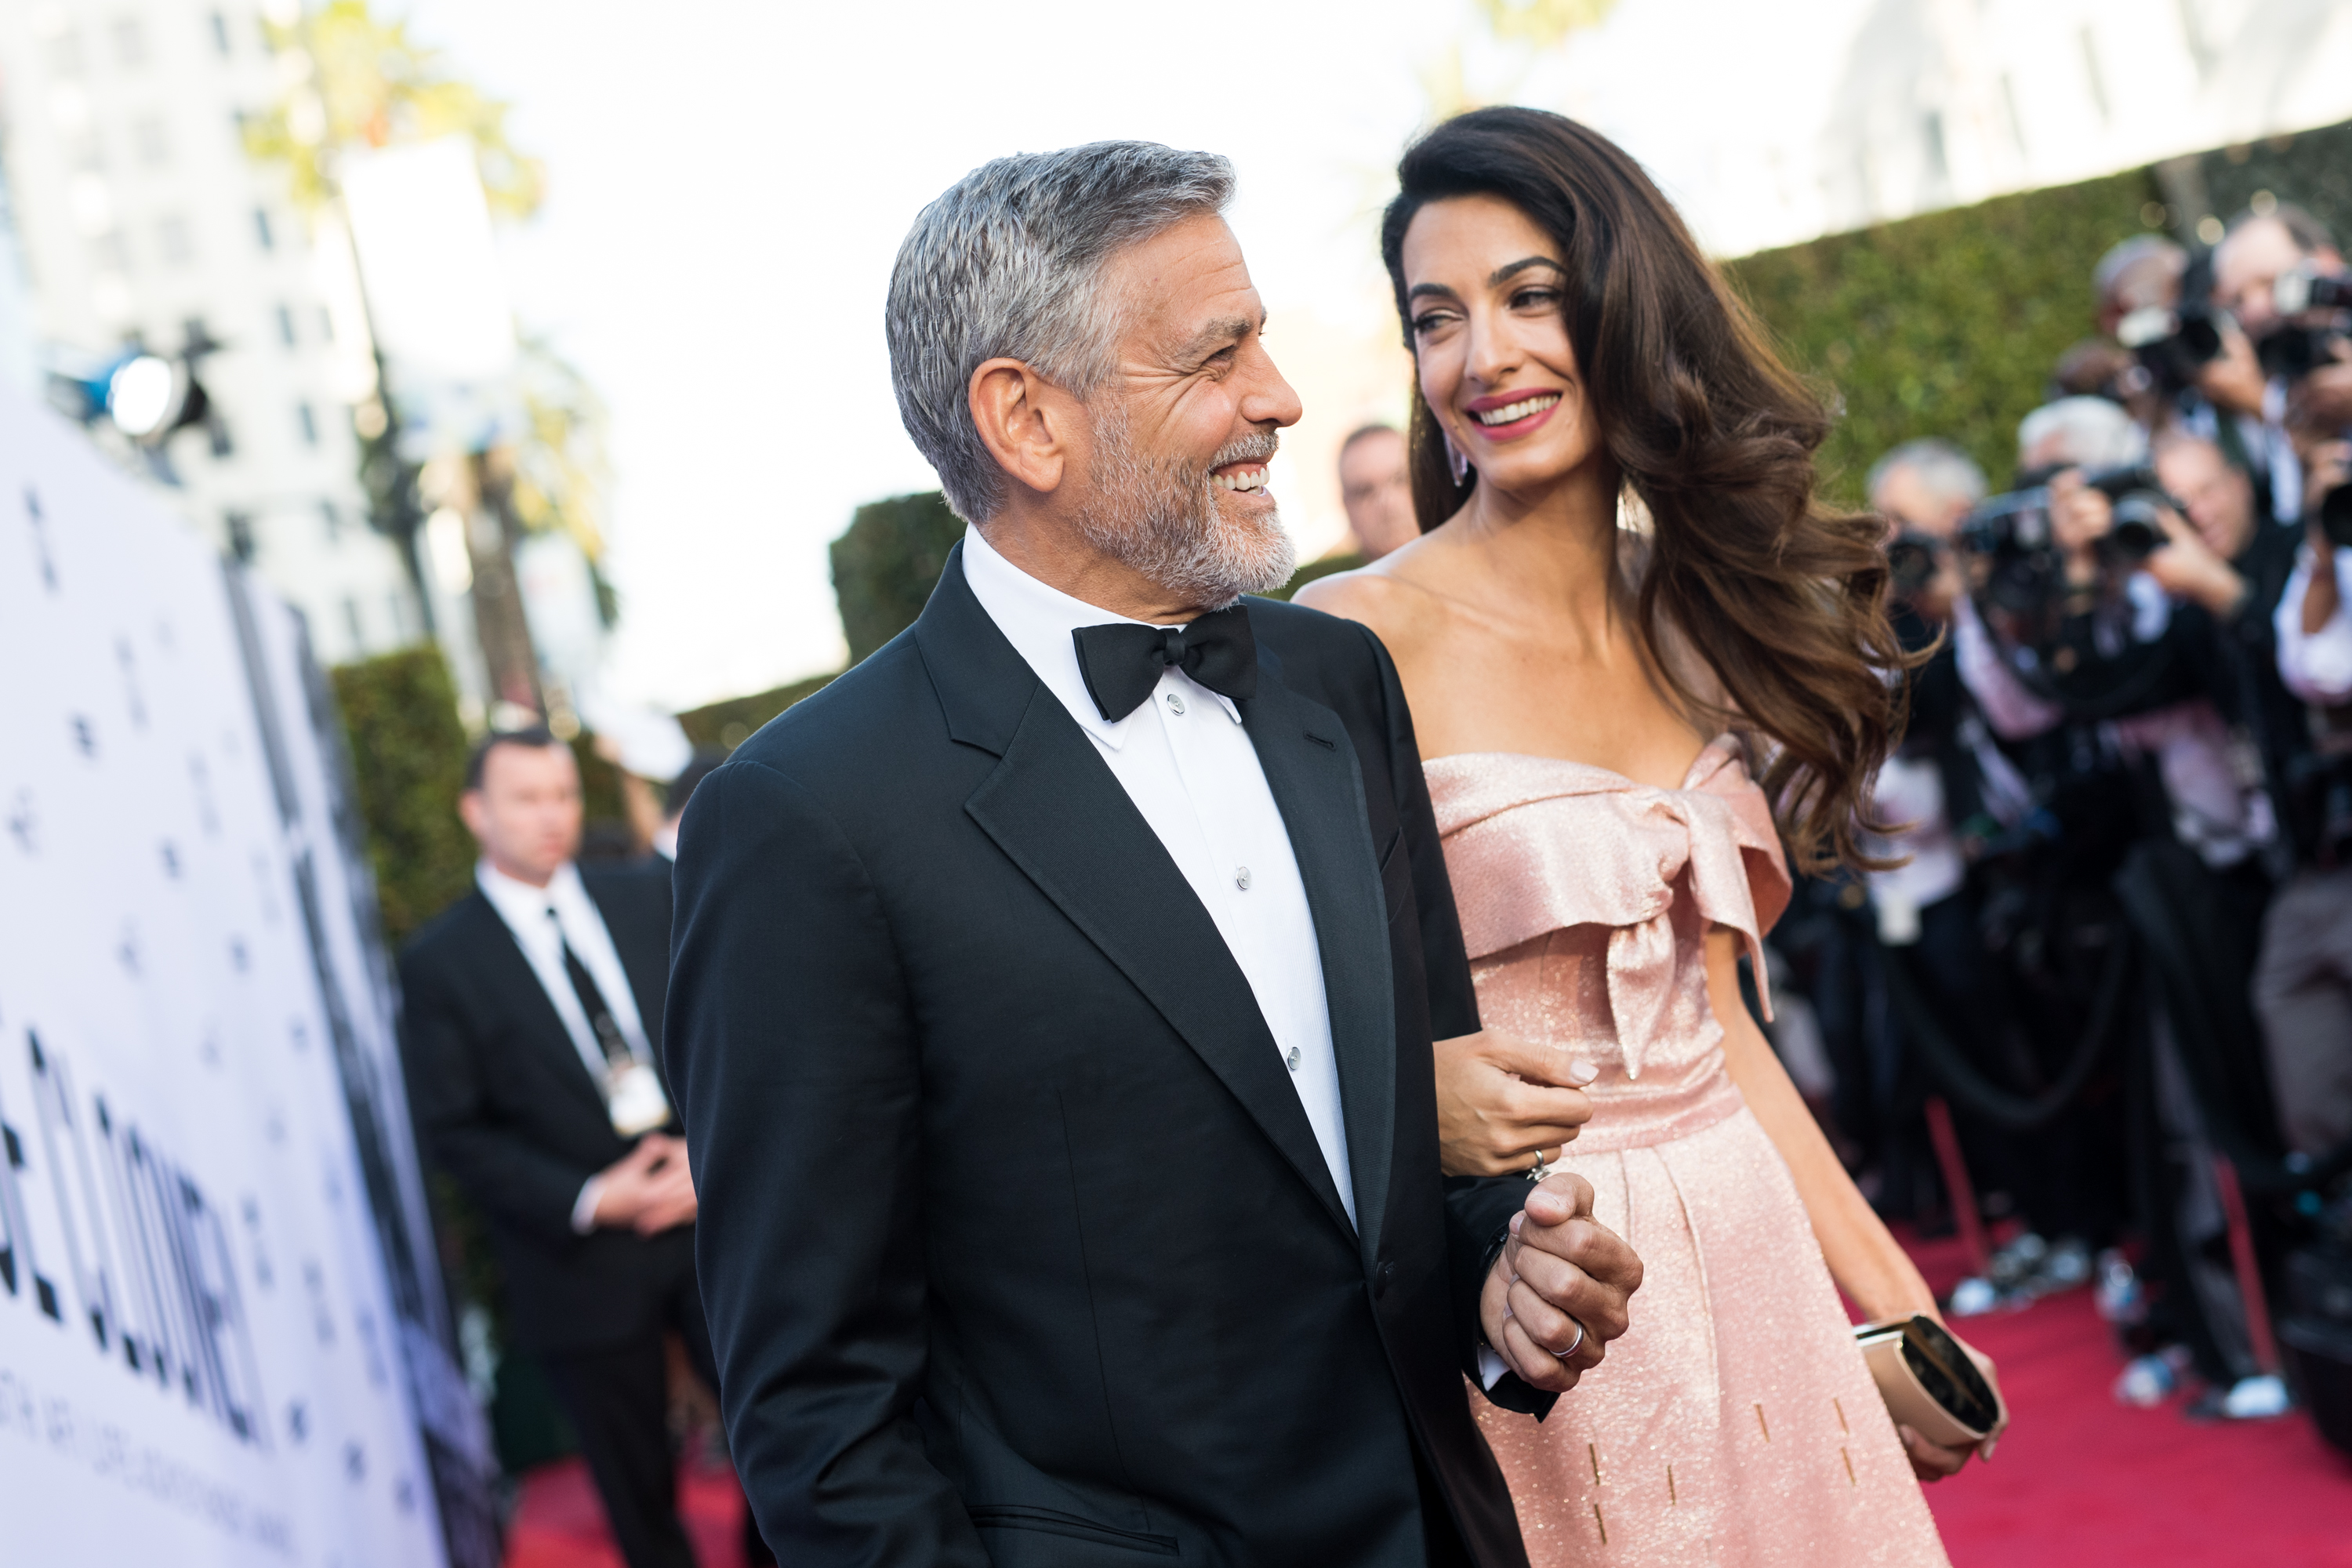 Amal Clooney and George Clooney attend the American Film Institute's 46th Life Achievement Award Gala Tribute to George Clooney at Dolby Theatre on June 7, 2018 in Hollywood, California.